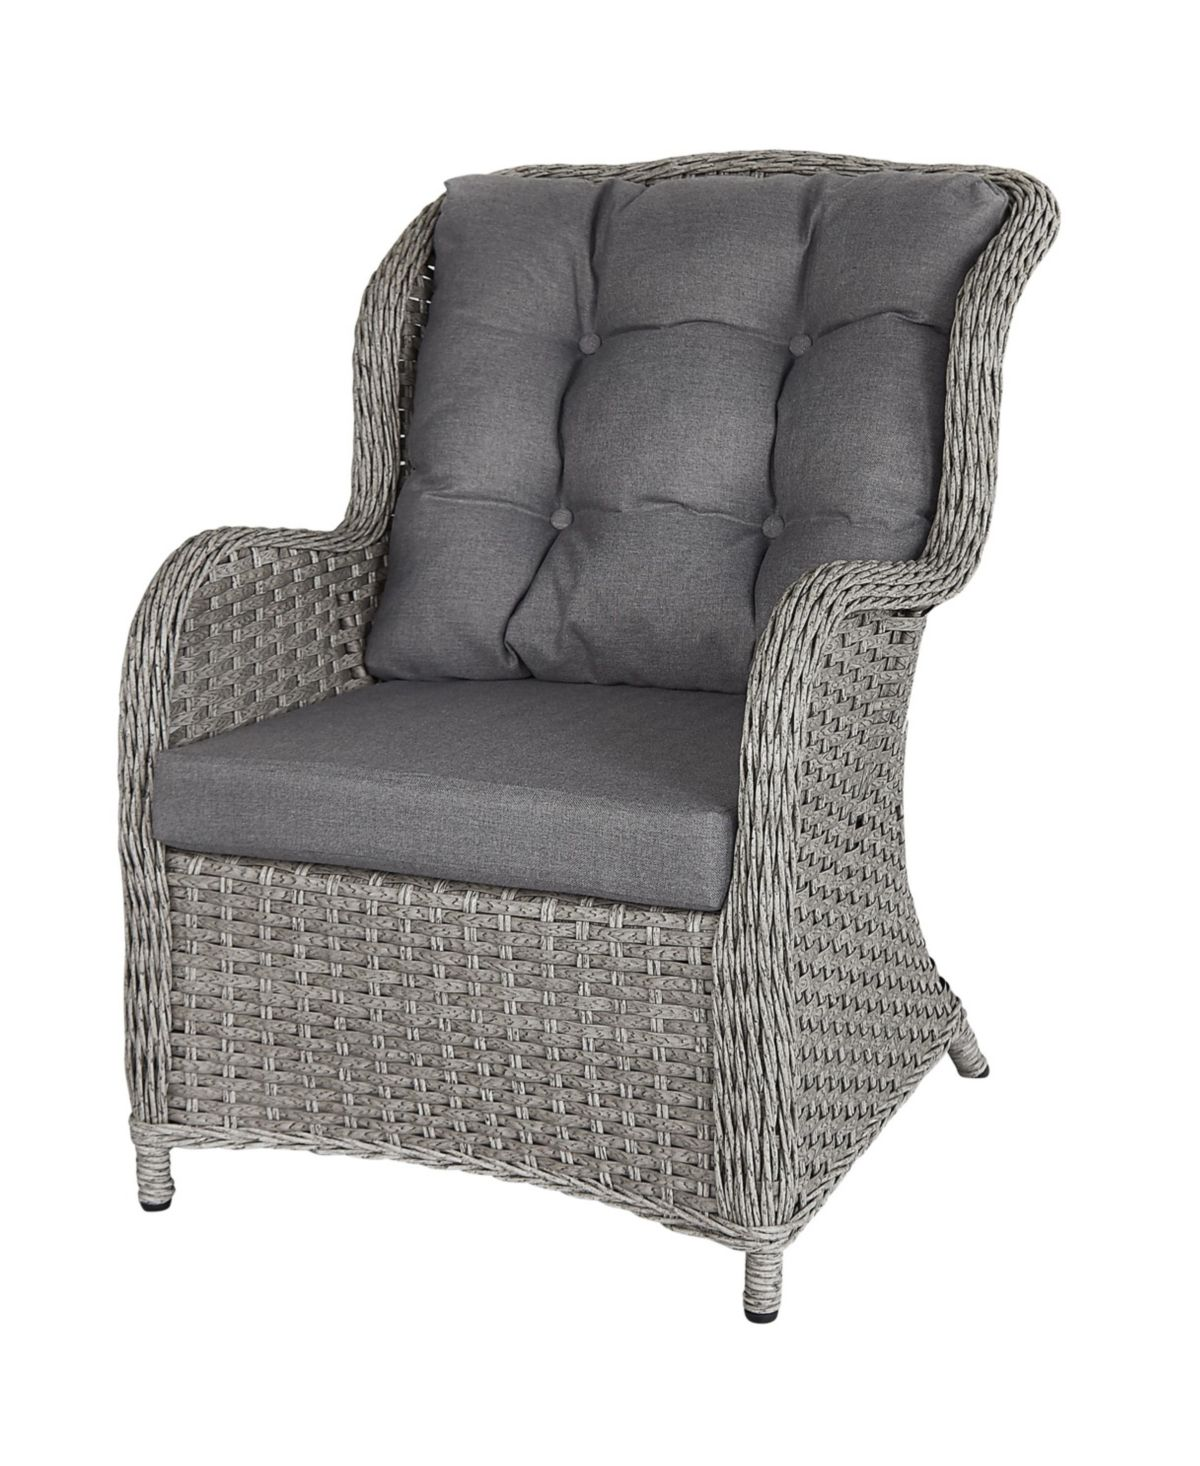 Gallerie Décor Bay Breeze Indoor/Outdoor Rattan Chair